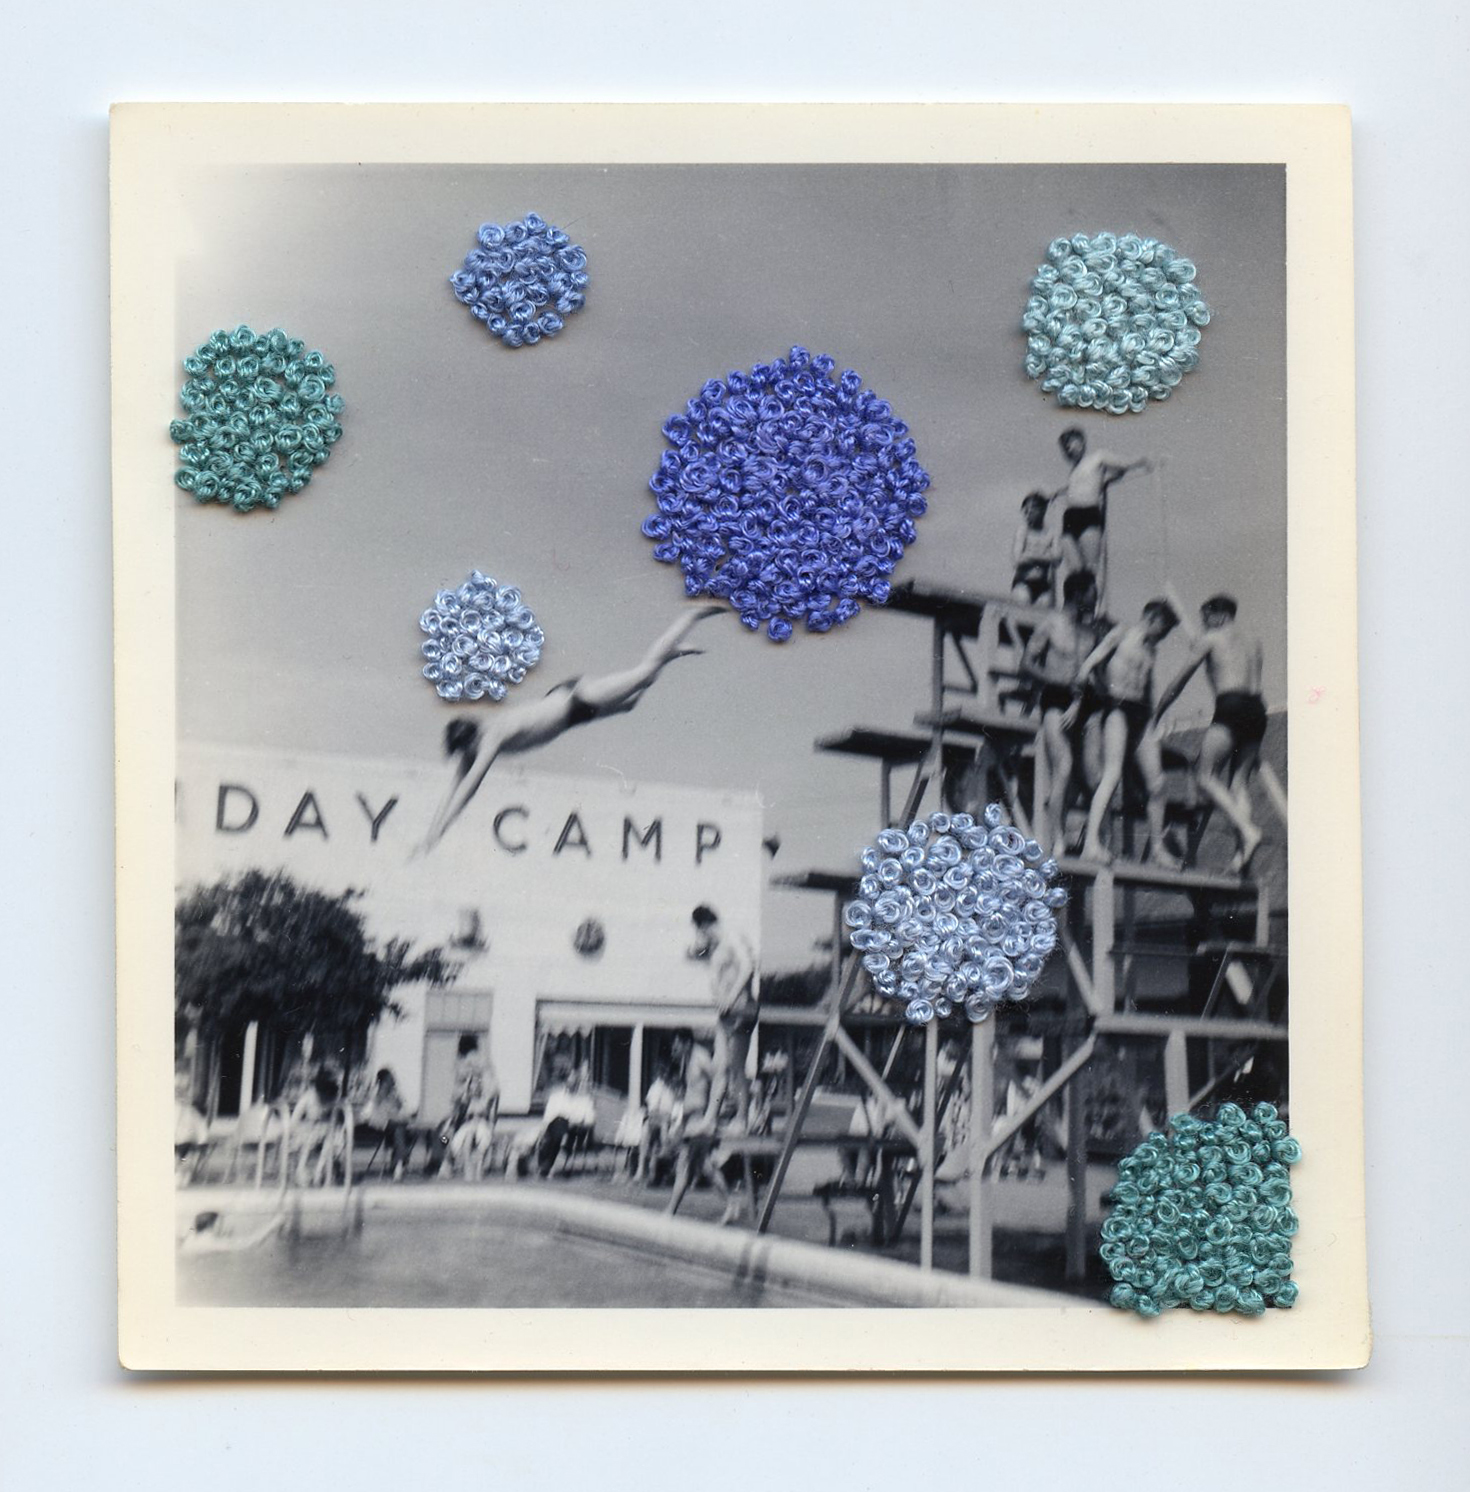 Day Camp   Vintage Photo Embroidery Thread